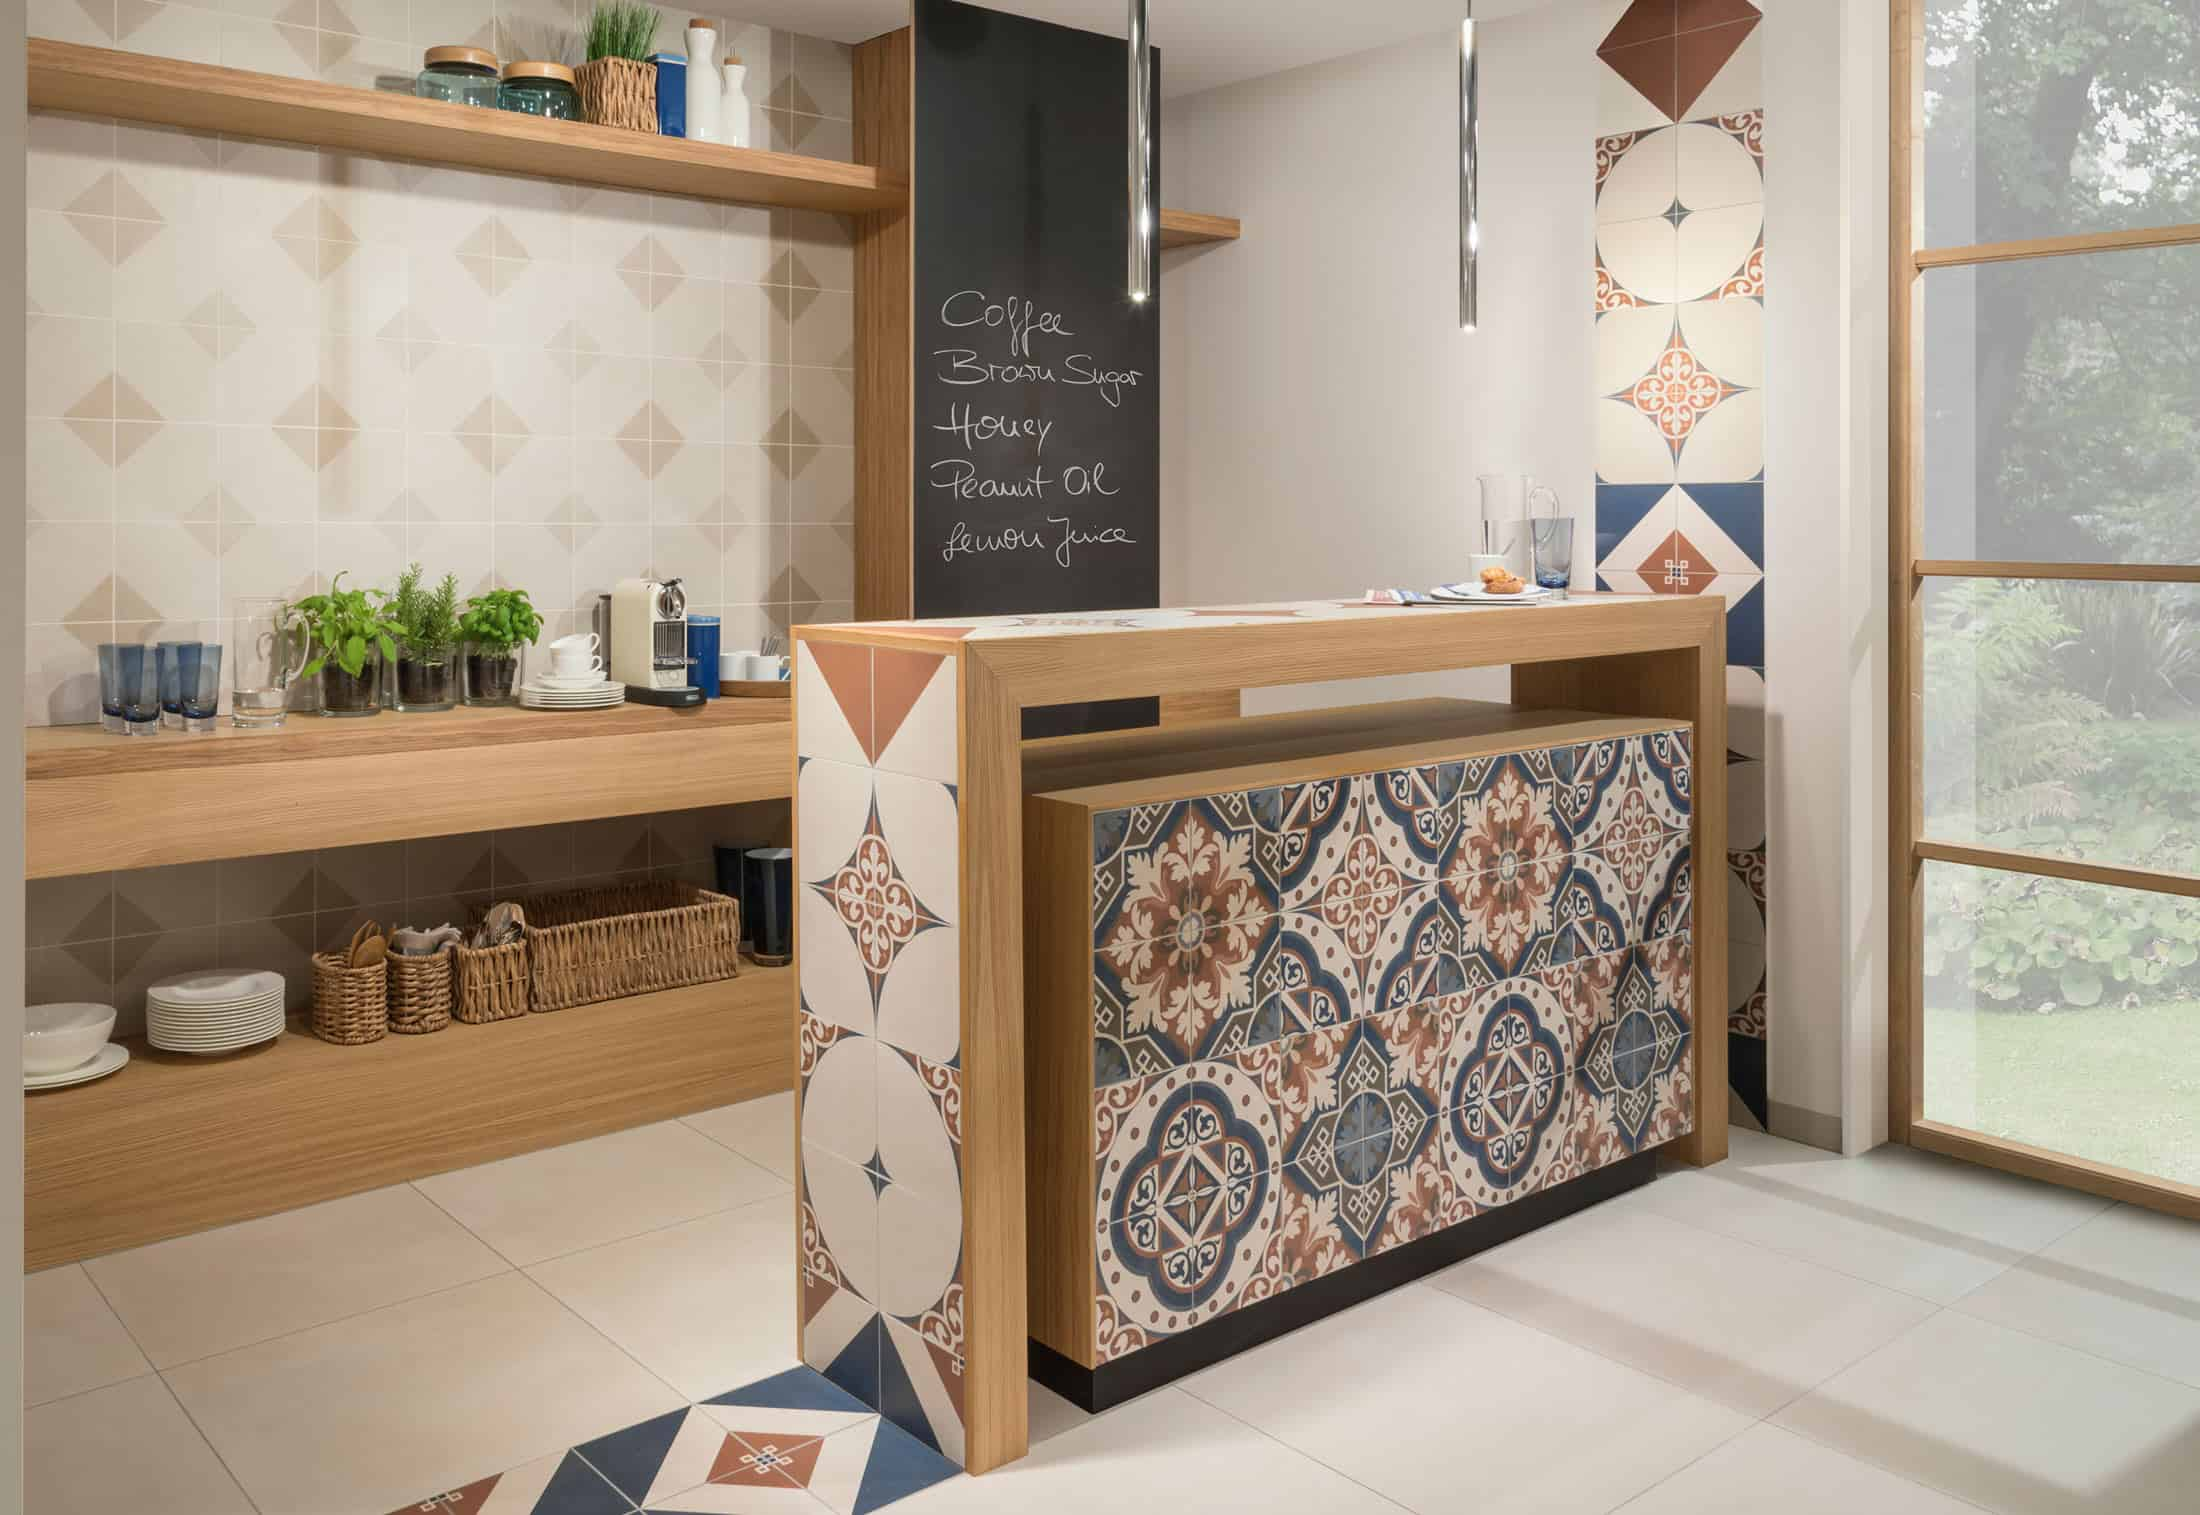 Porcelain stoneware tiles by villeroy and boch century unlimited - Villeroy boch century unlimited ...